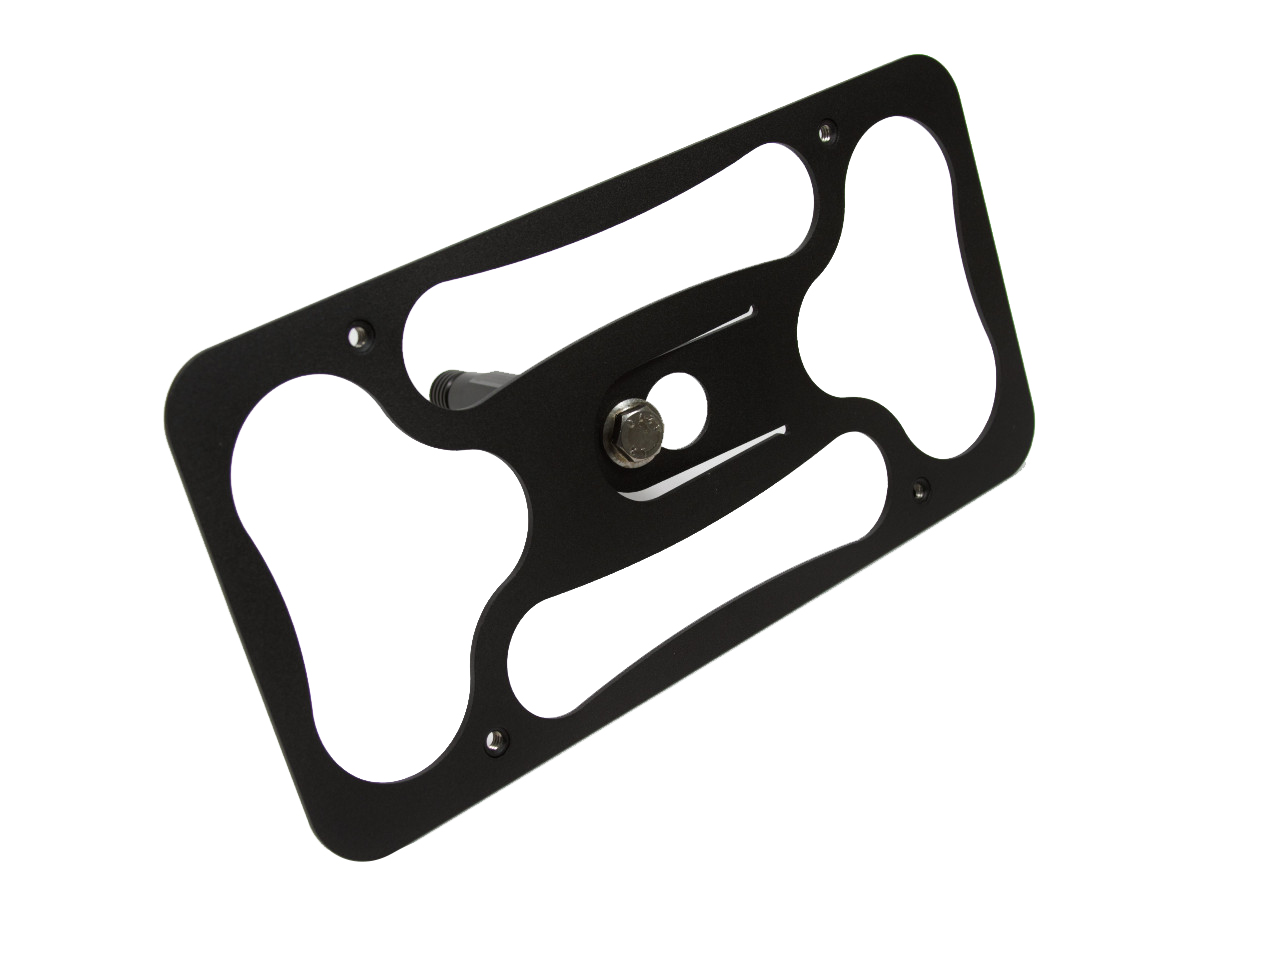 Thumbnail of The Platypus License Plate Mount for 2020 BMW 745e